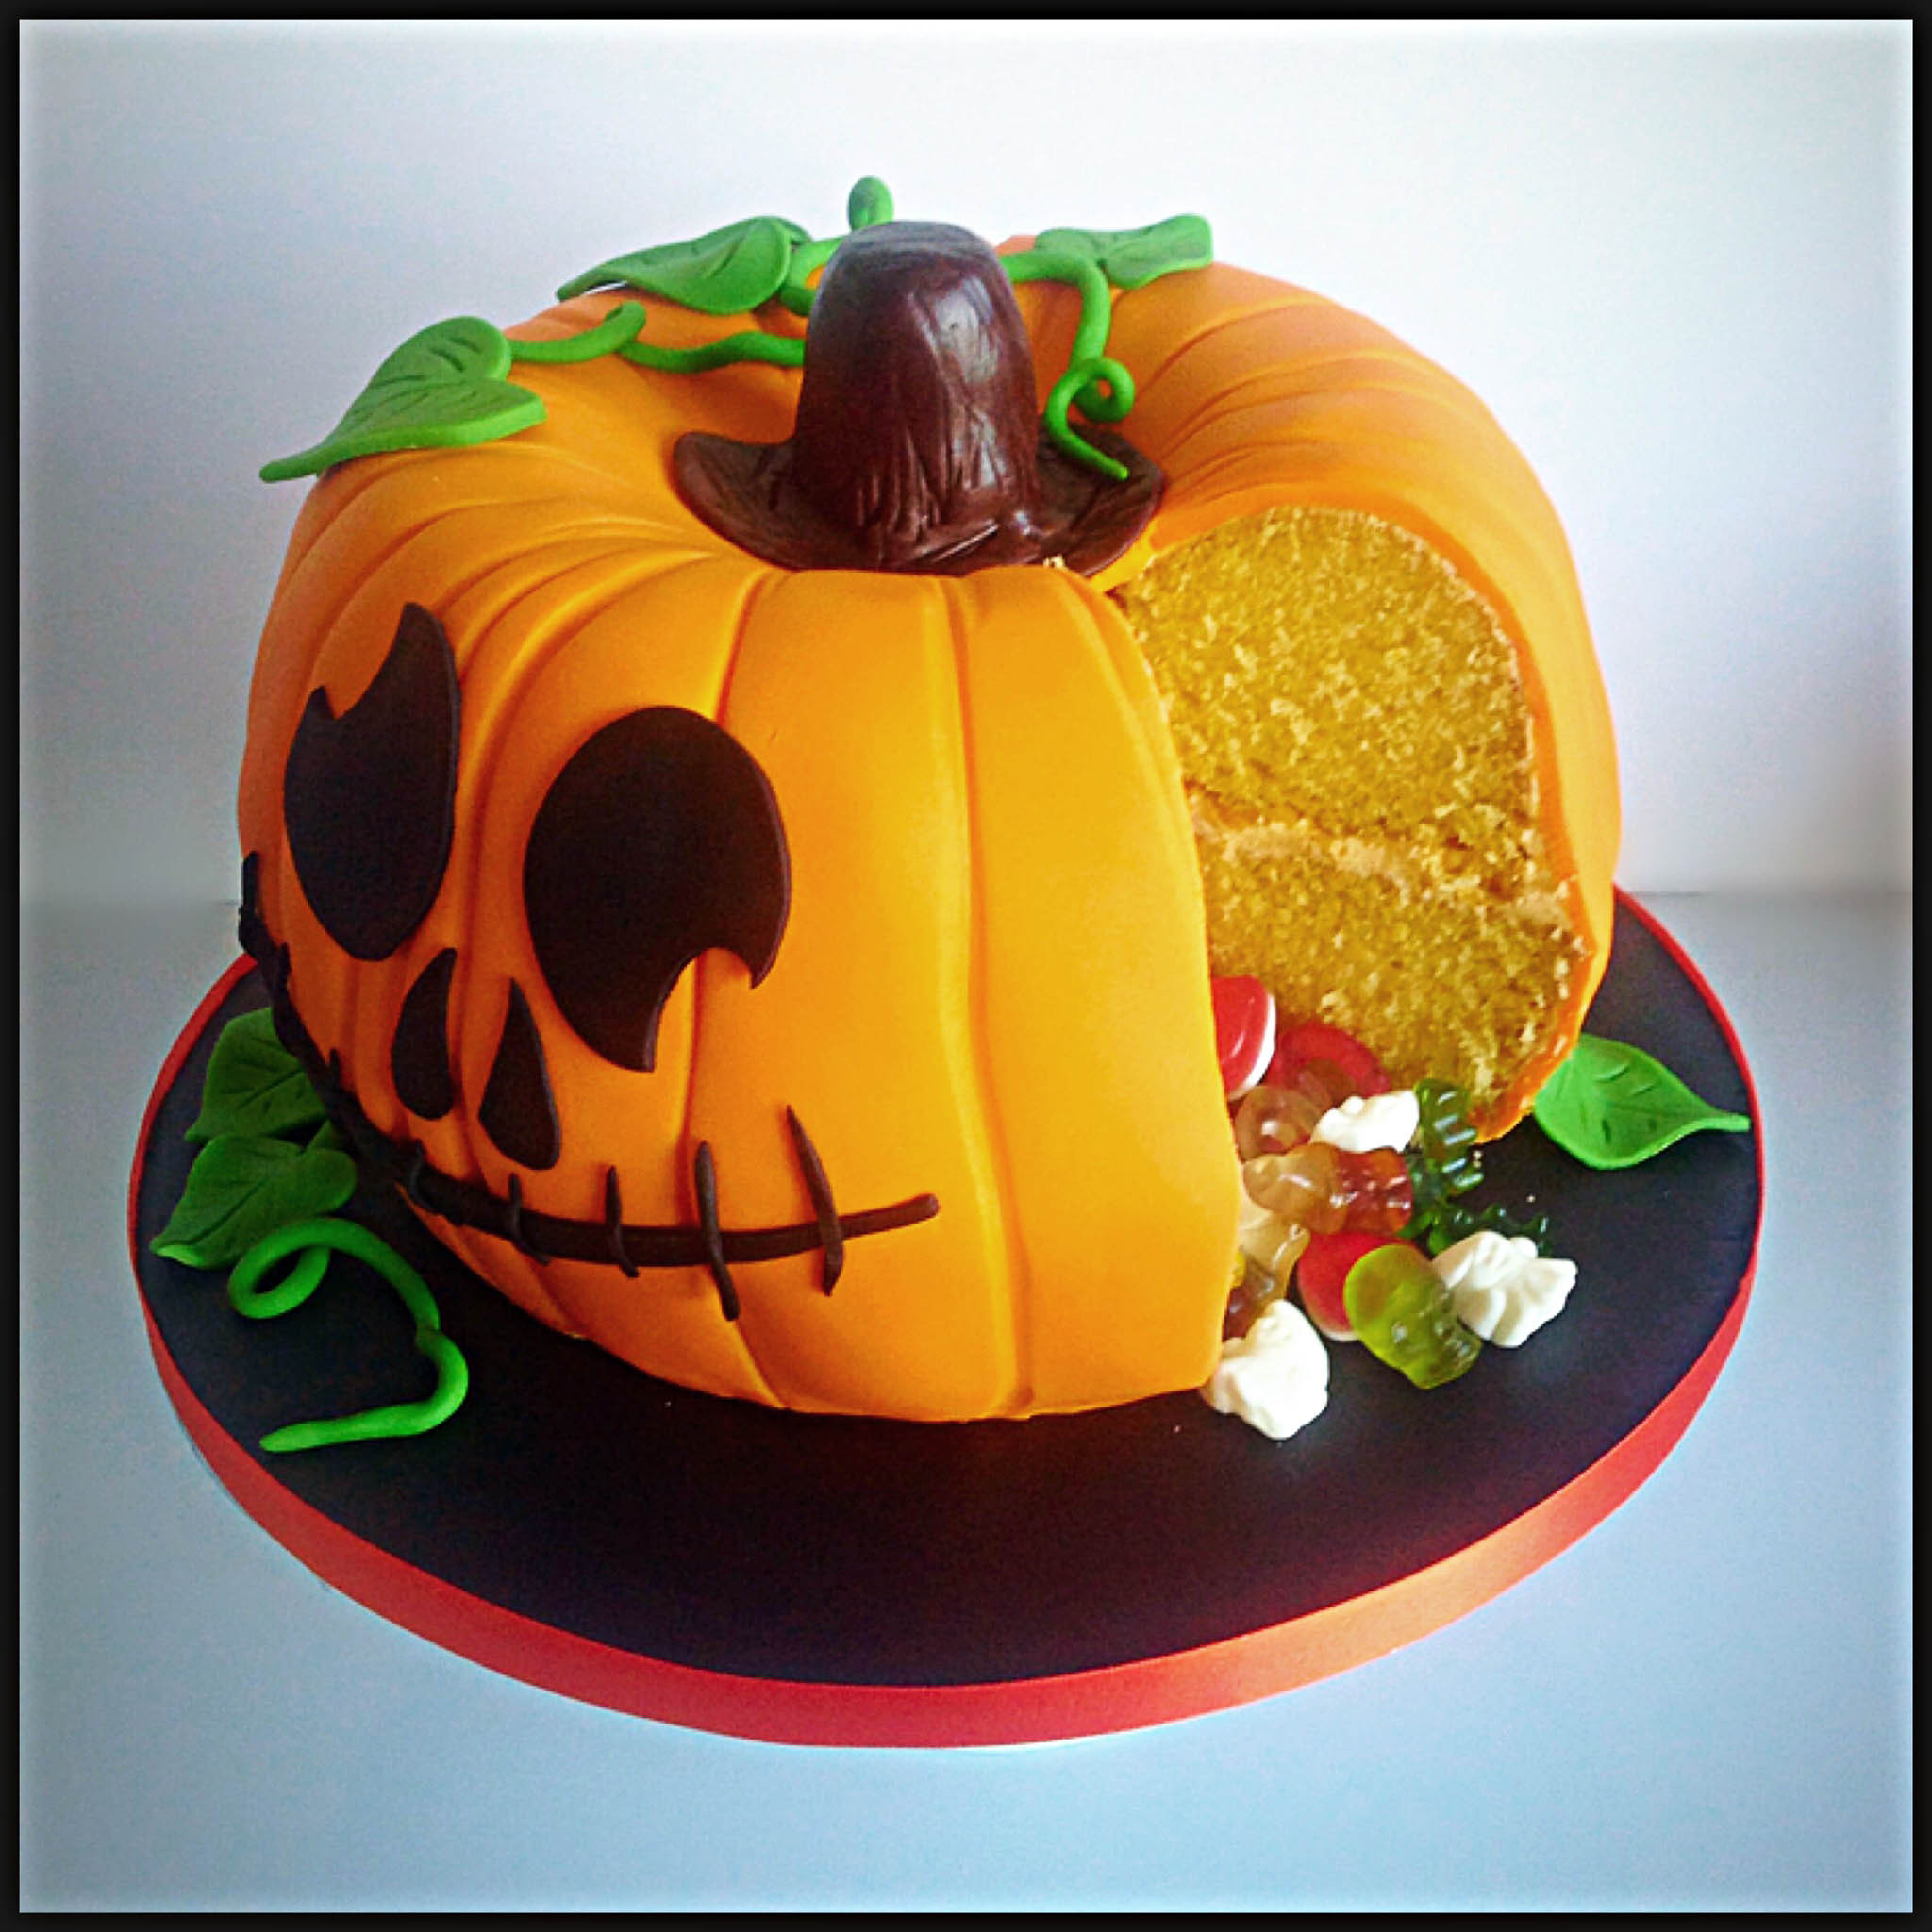 Pumpkin Birthday Cake  How To Make A Party Pumpkin Piñata Cake